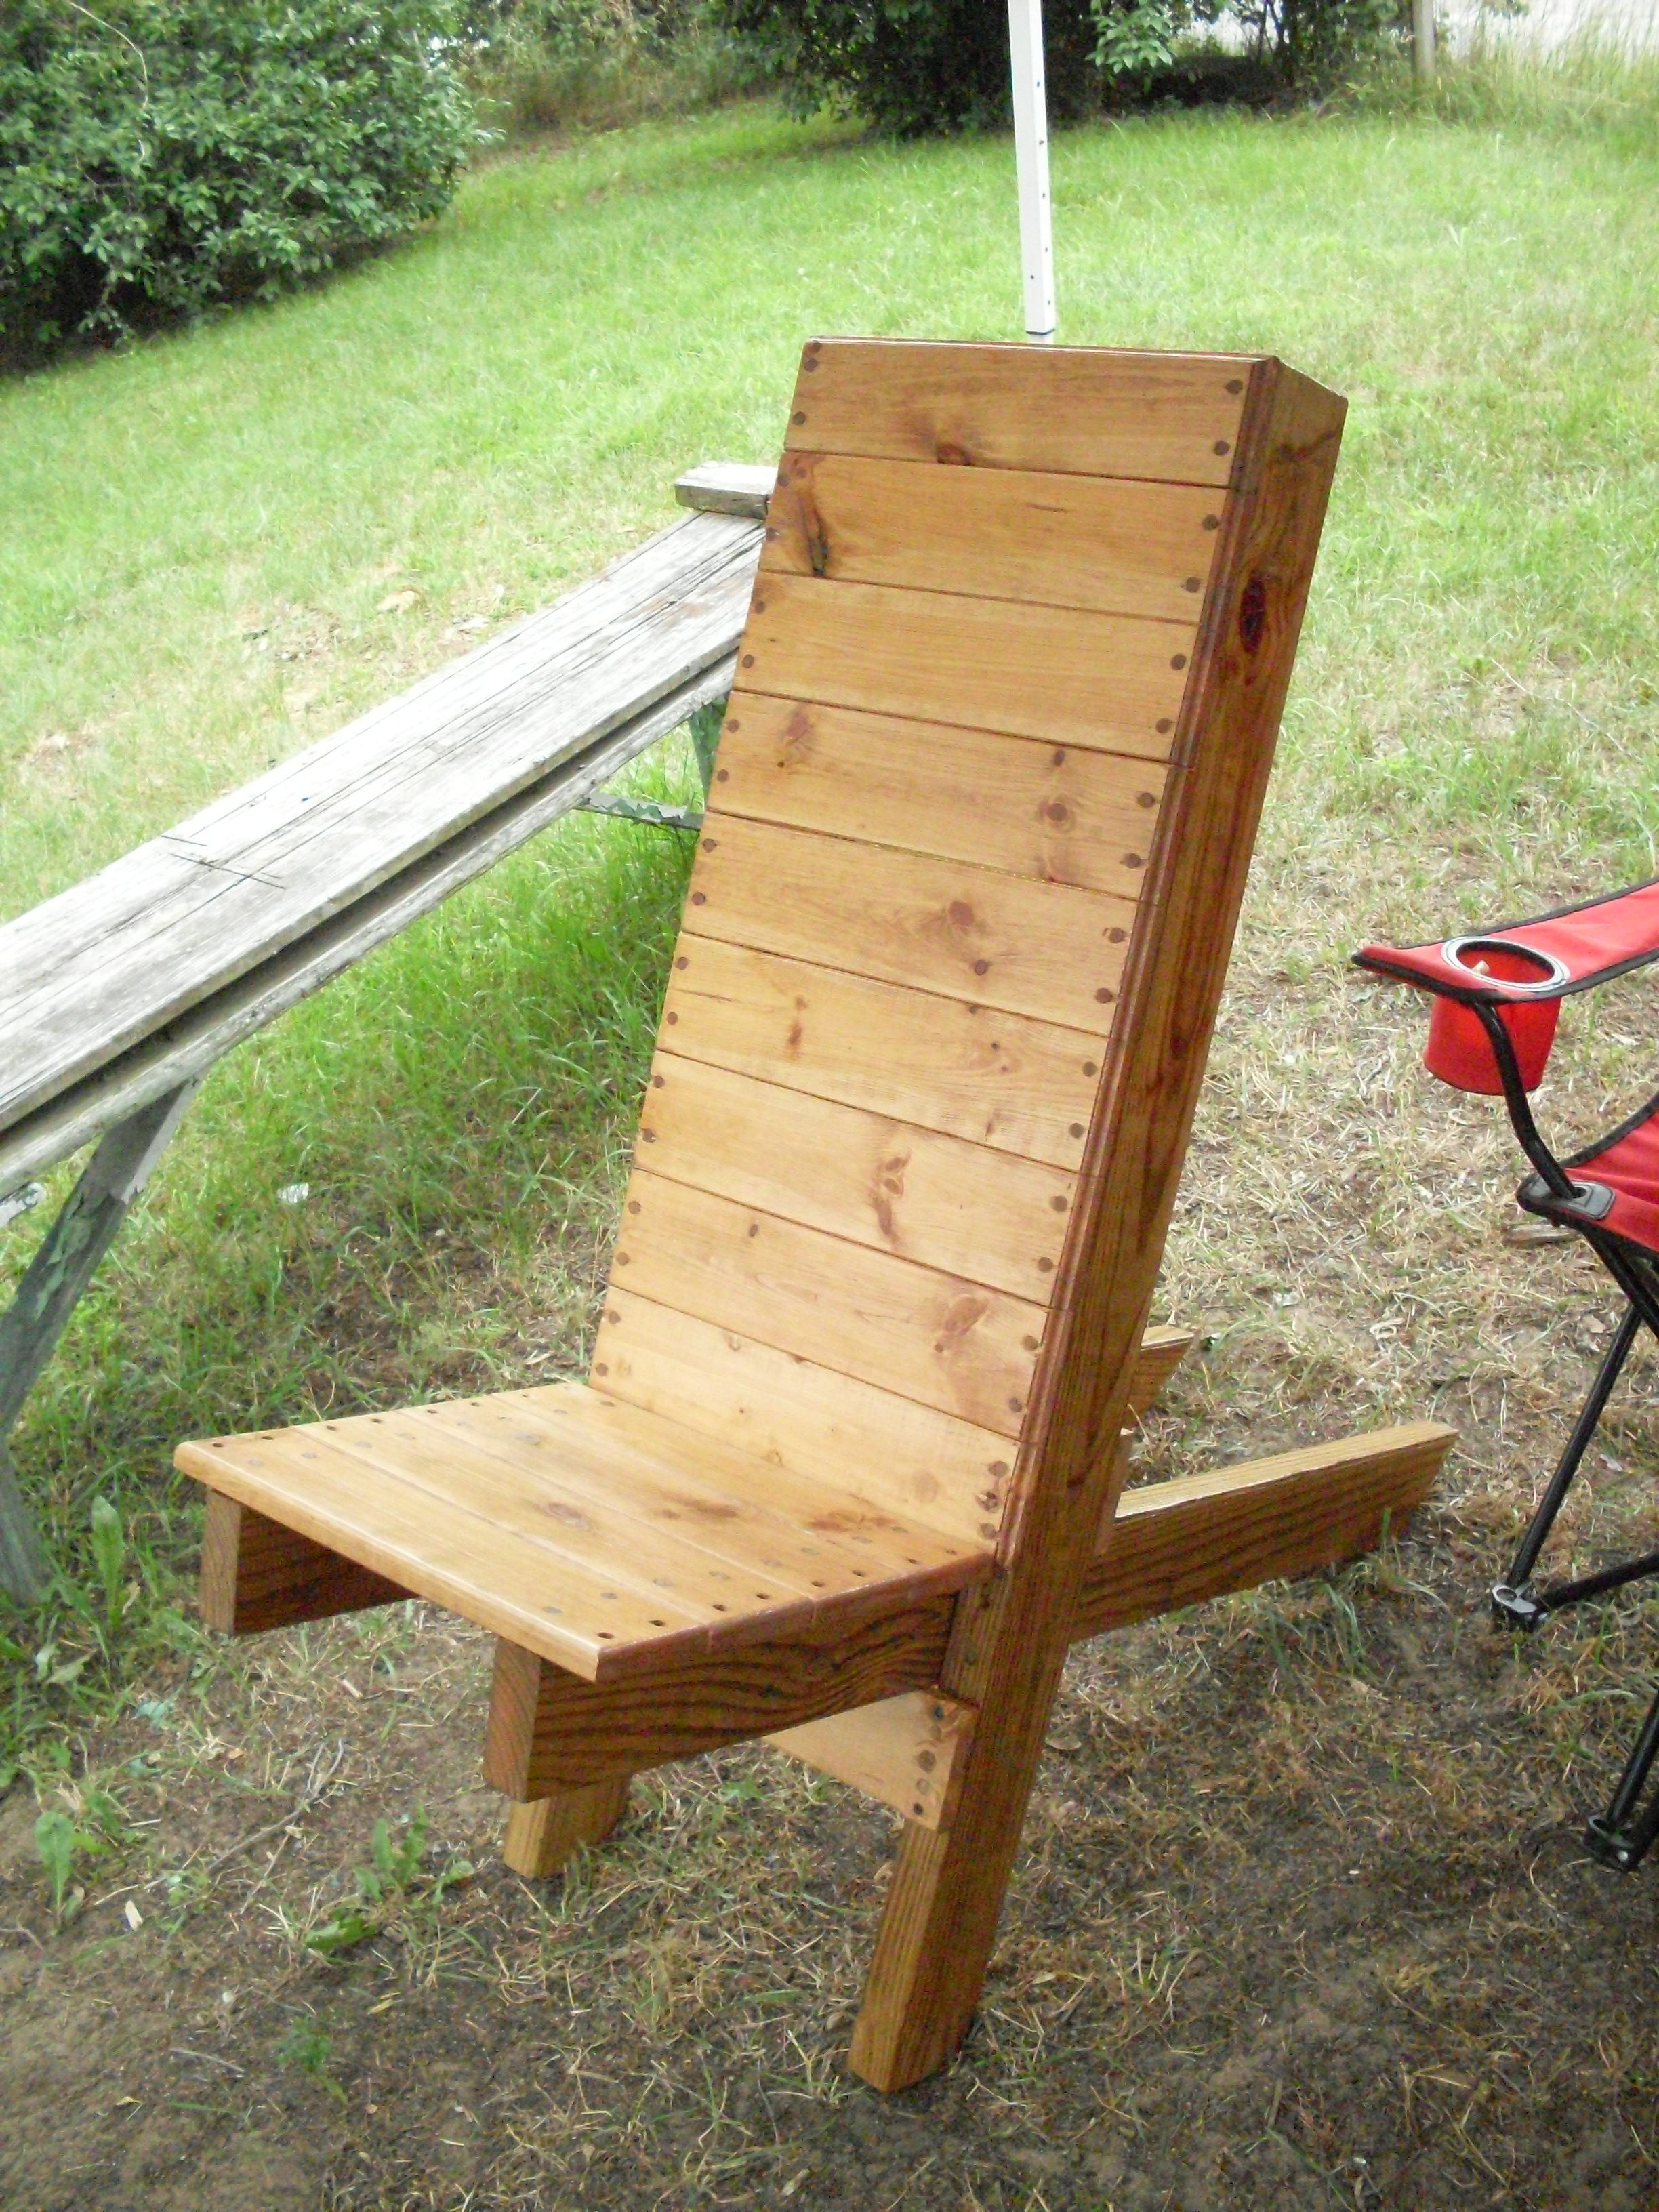 Diy wooden outdoor chairs quick woodworking projects Camp designs